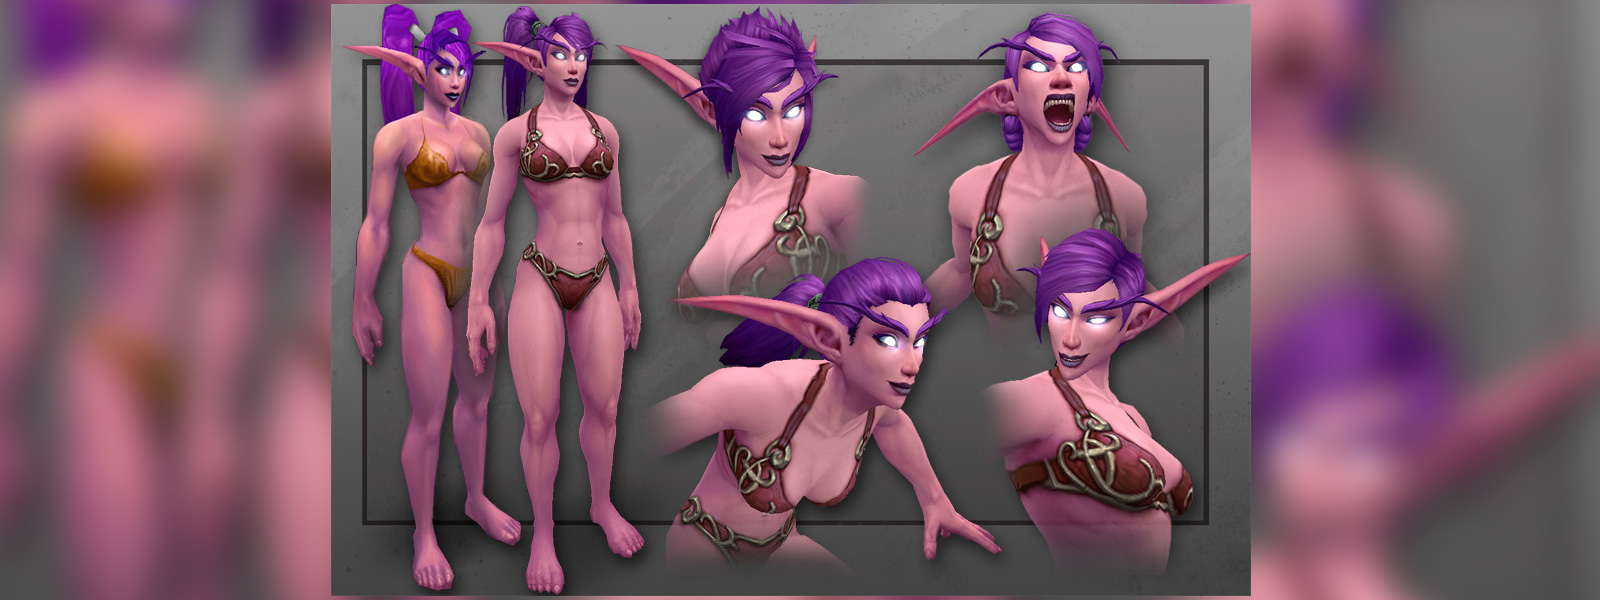 World of warcraft human female nude anime pictures